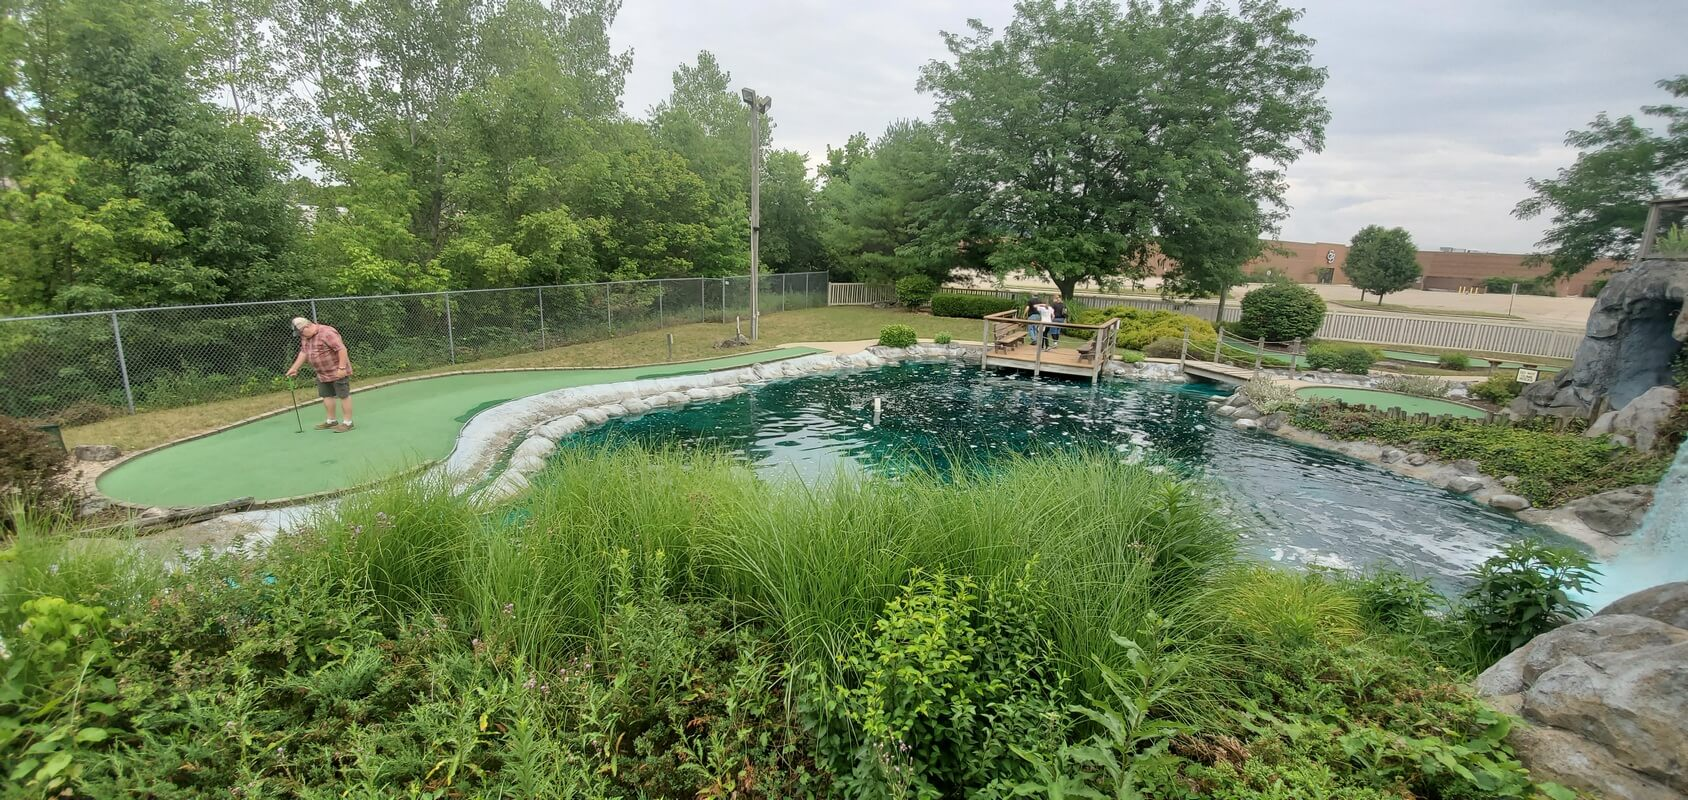 Mini-golf course at Wild Waters Fun Center